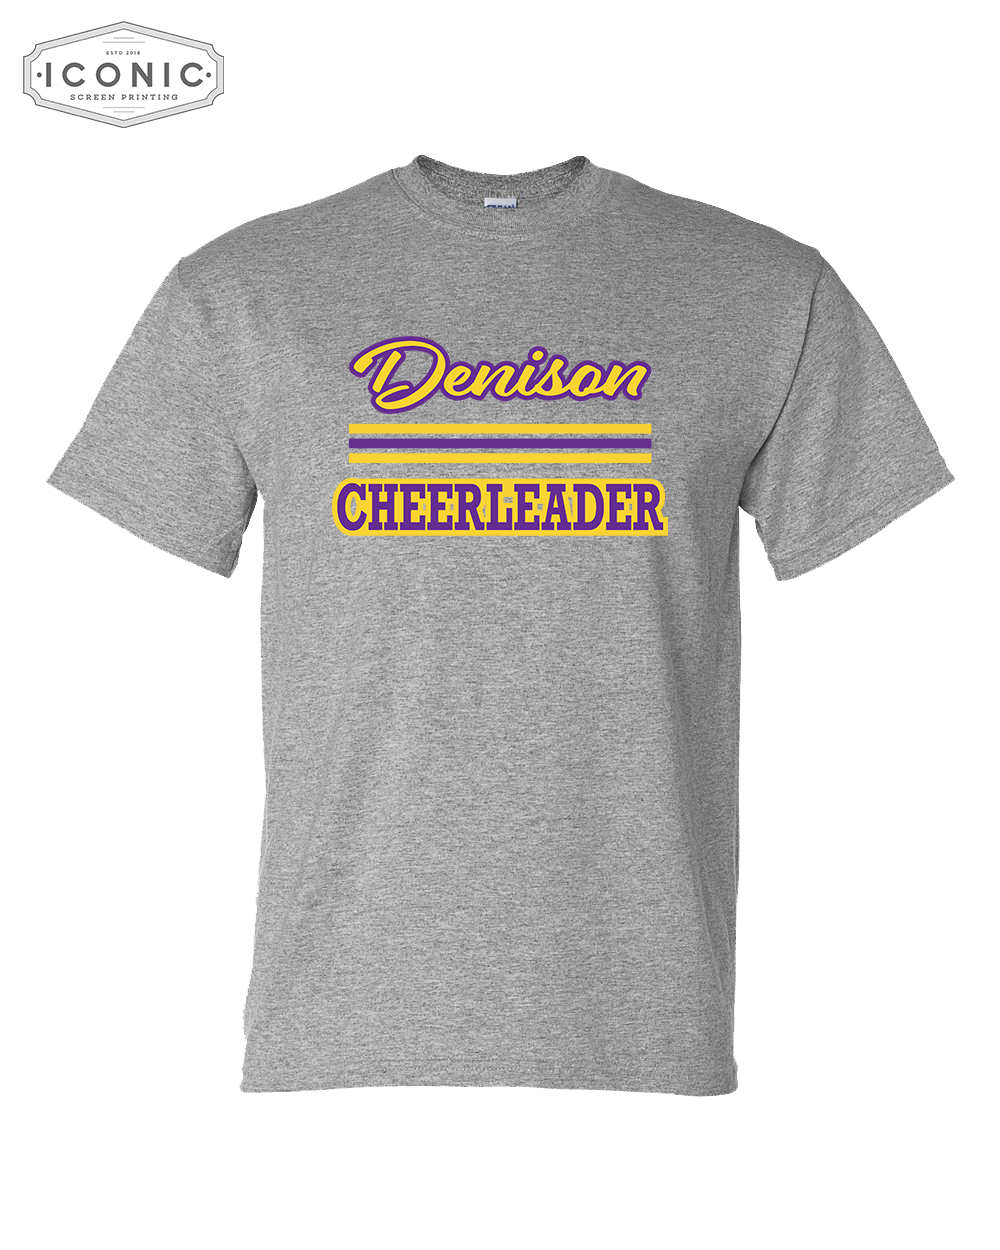 Denison Cheerleader - DryBlend® T-Shirt - 8000